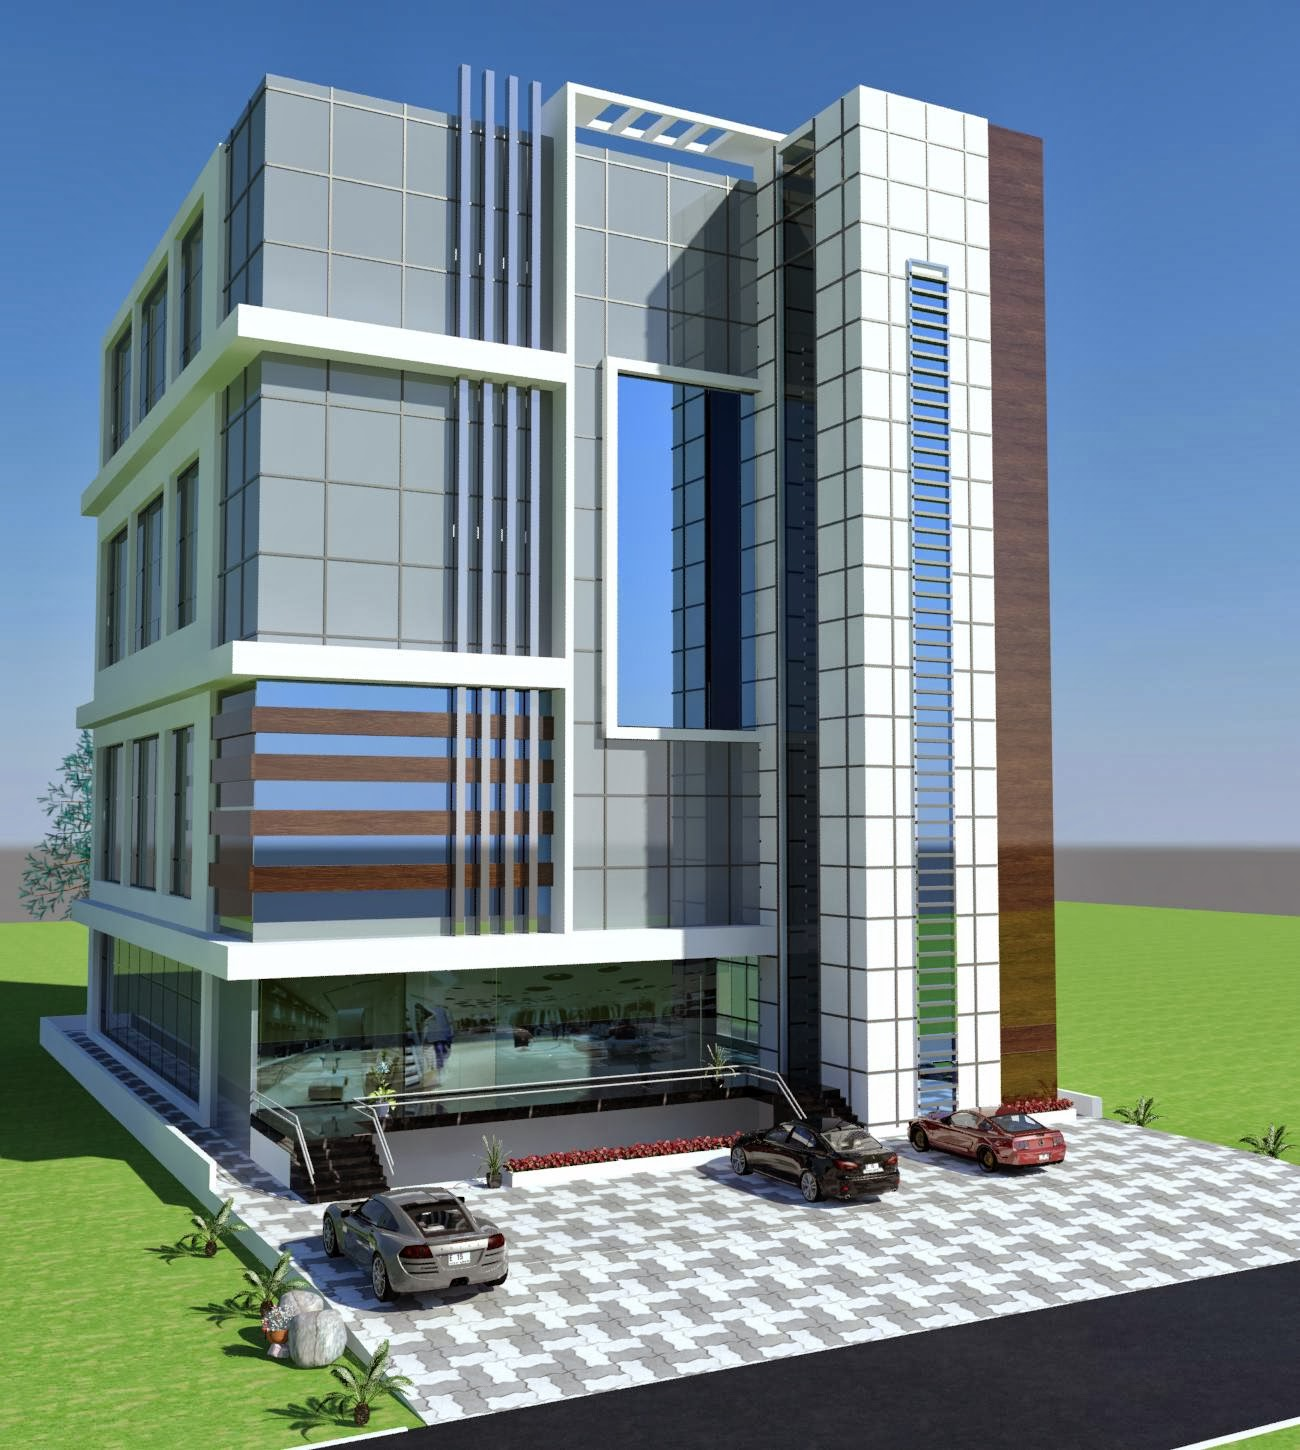 D Front Elevation Of Building : D front elevation